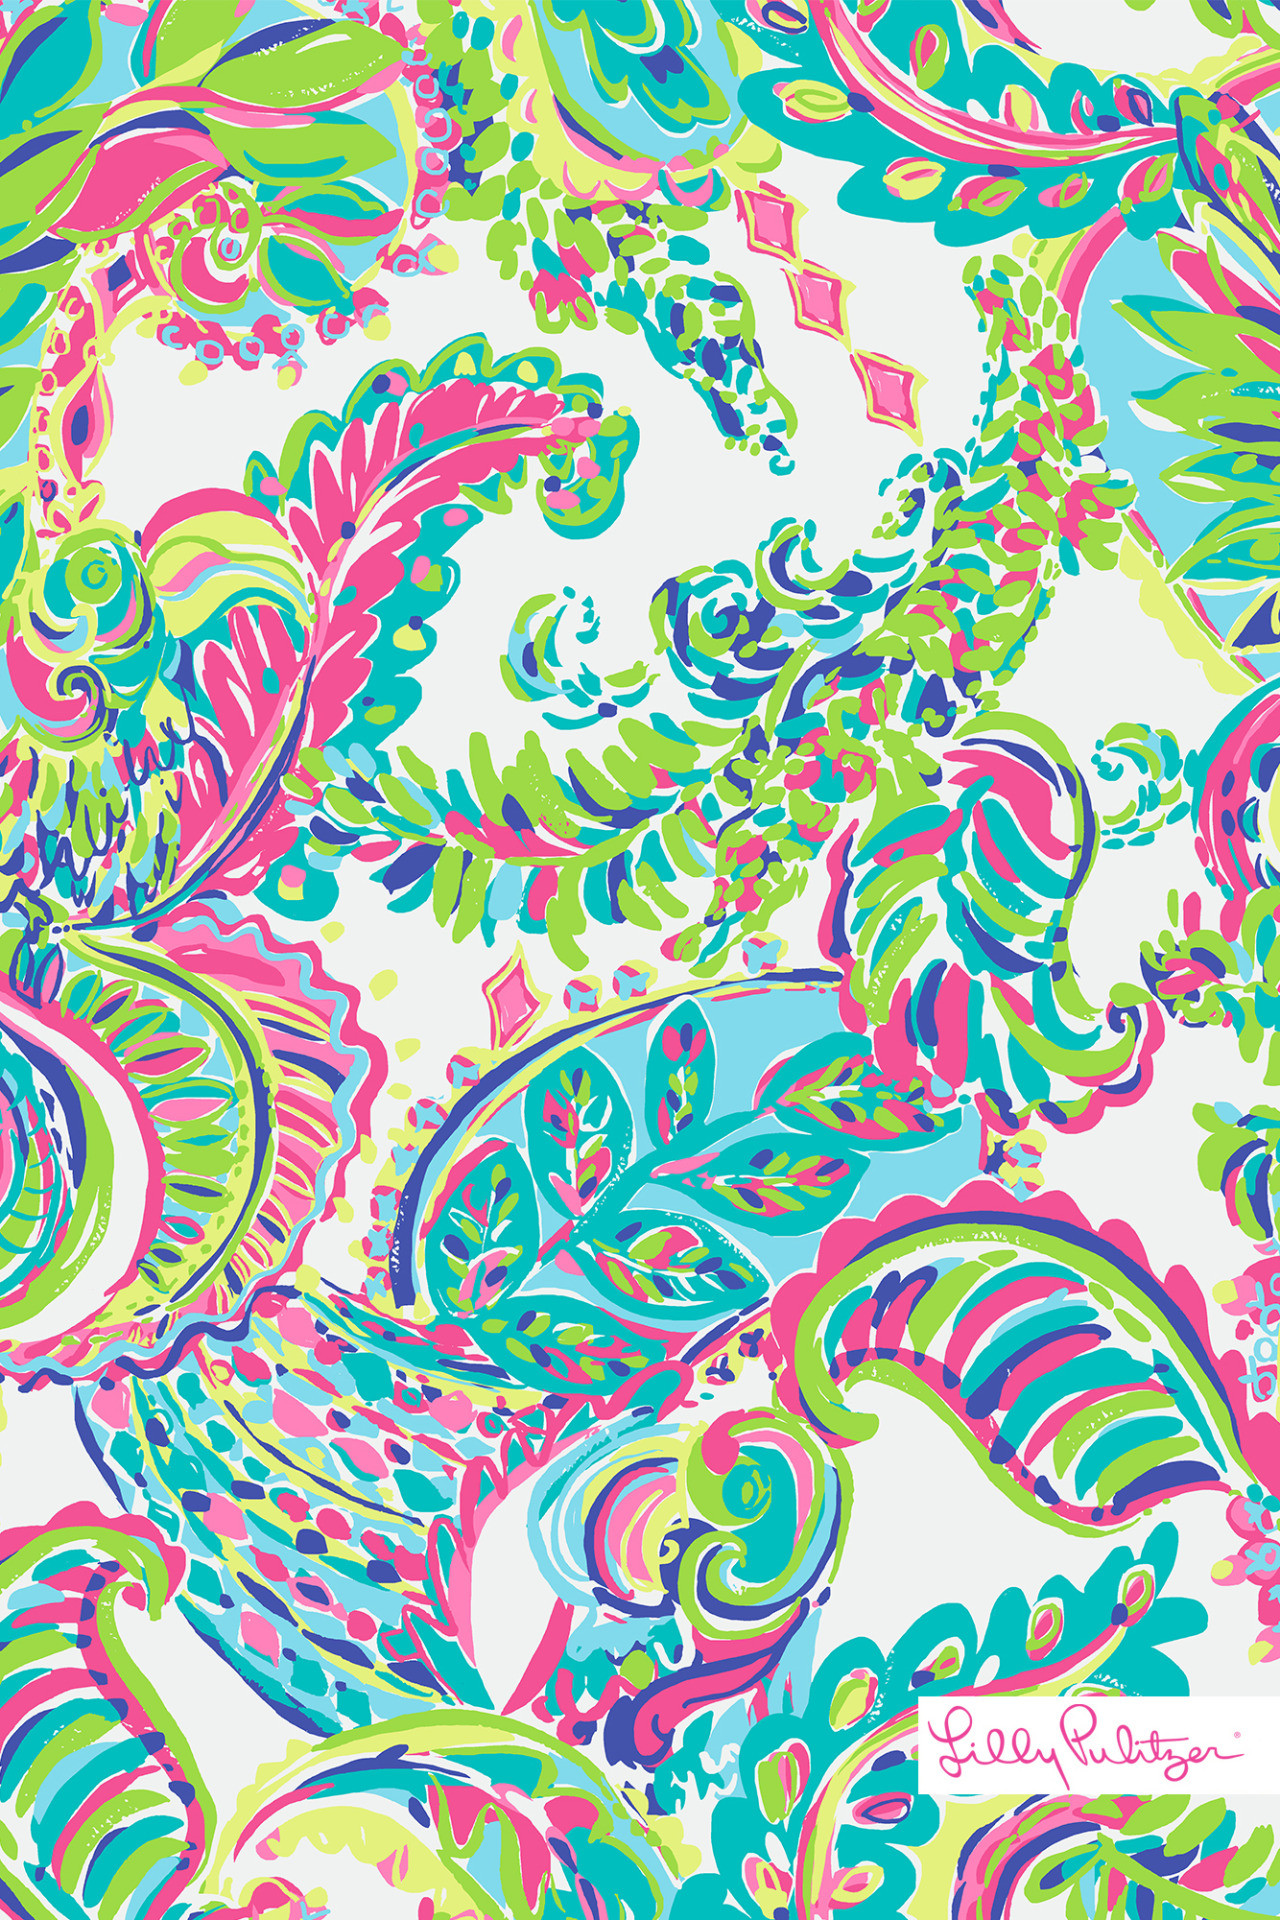 I Whale You — Toucan Play – Lilly Pulitzer iphone wallpaper!